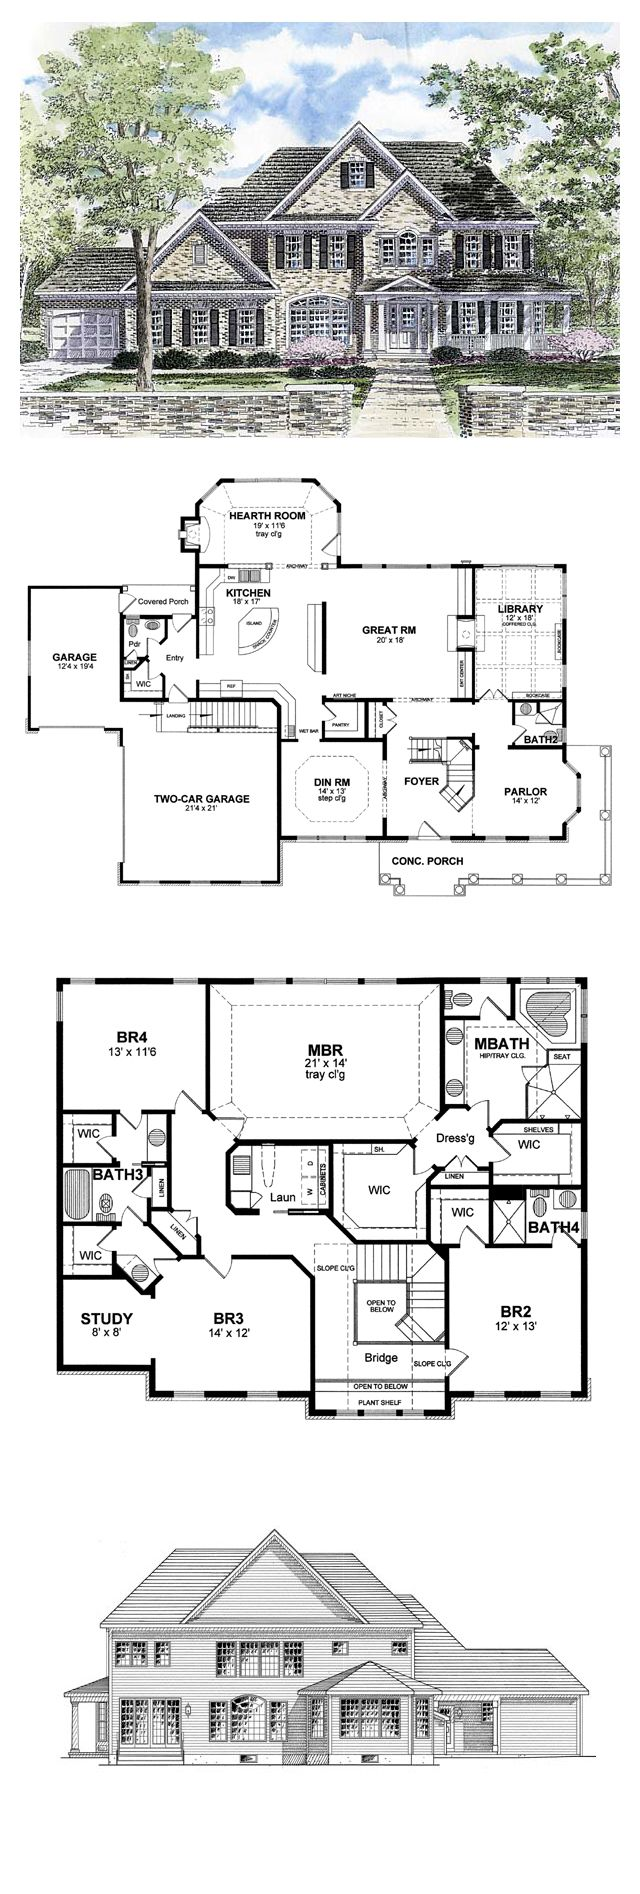 Cool house plan id chp 44788 total living area 3859 sq for Coolhouseplan com